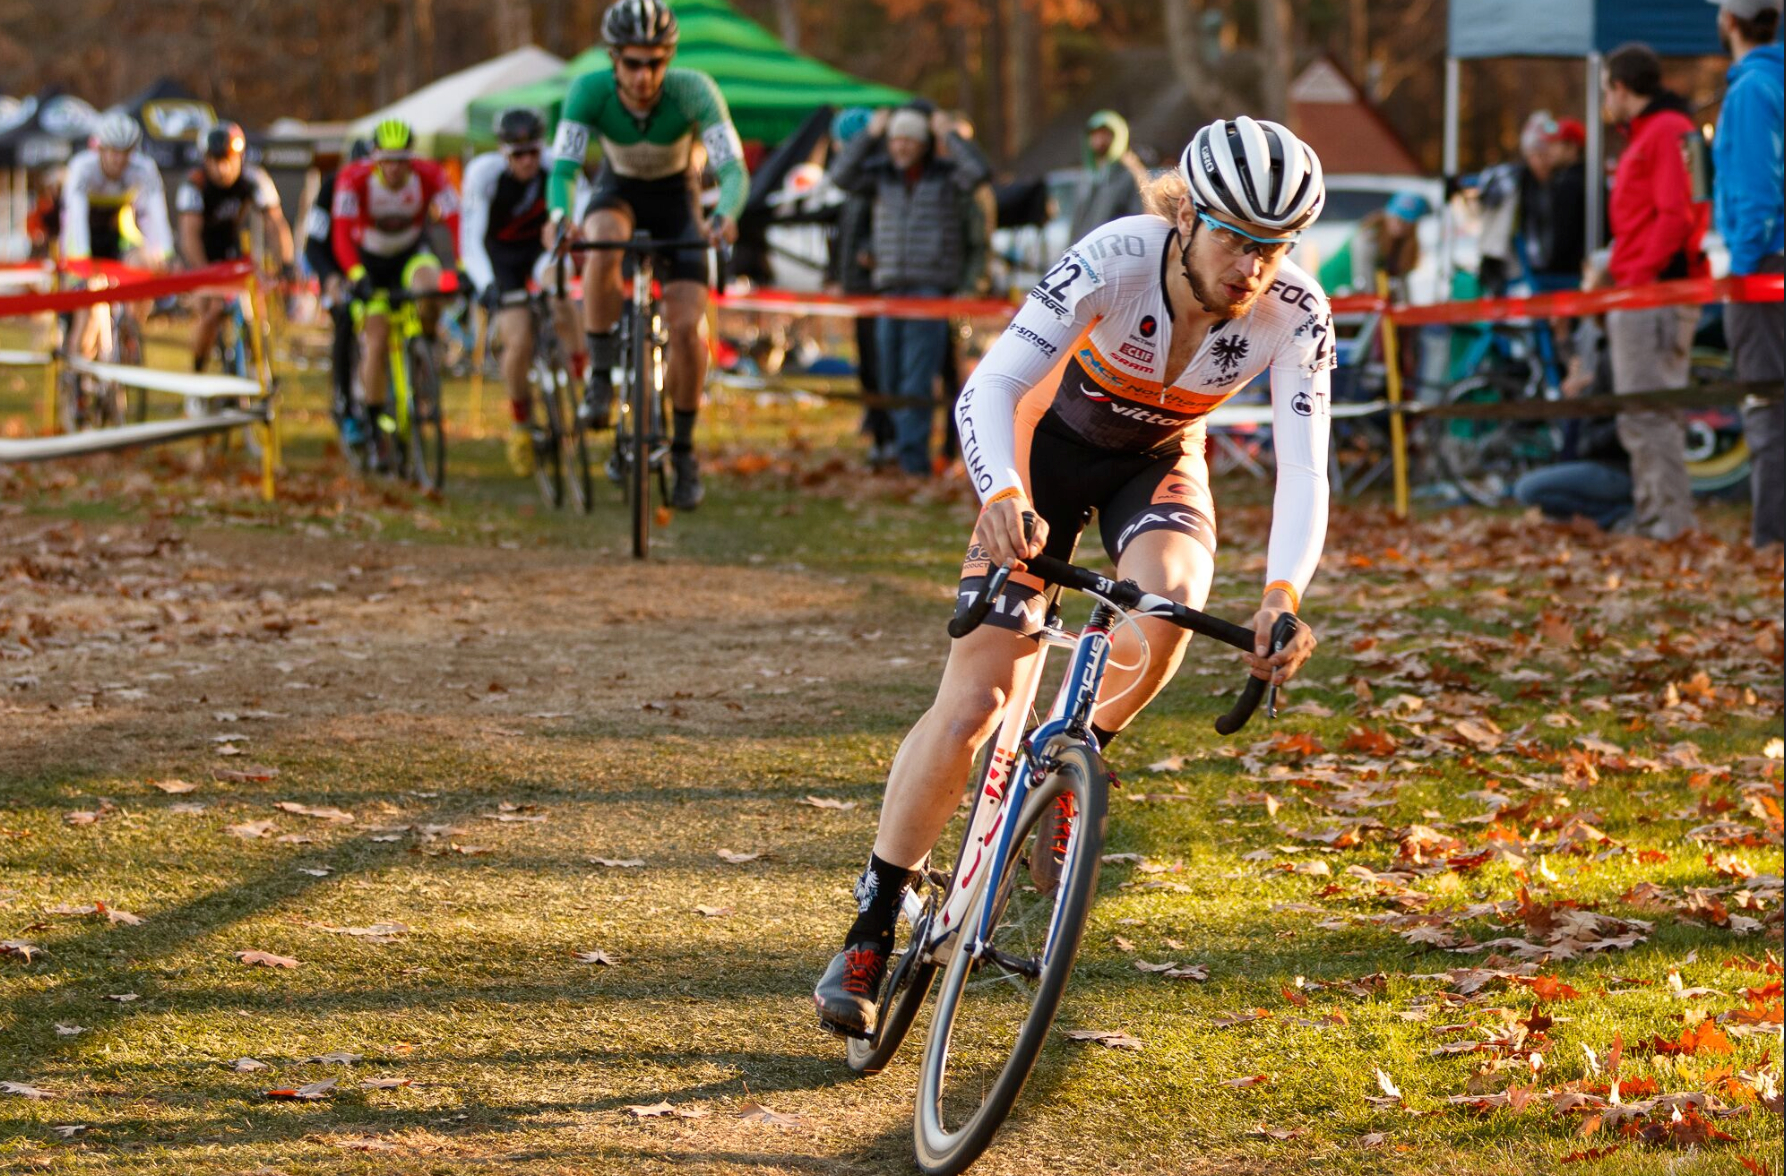 Scott Smith had an aggressive start to Sunday's race, giving him a 6th place finish overall and winning the U23. Photo by Todd Prekaski.